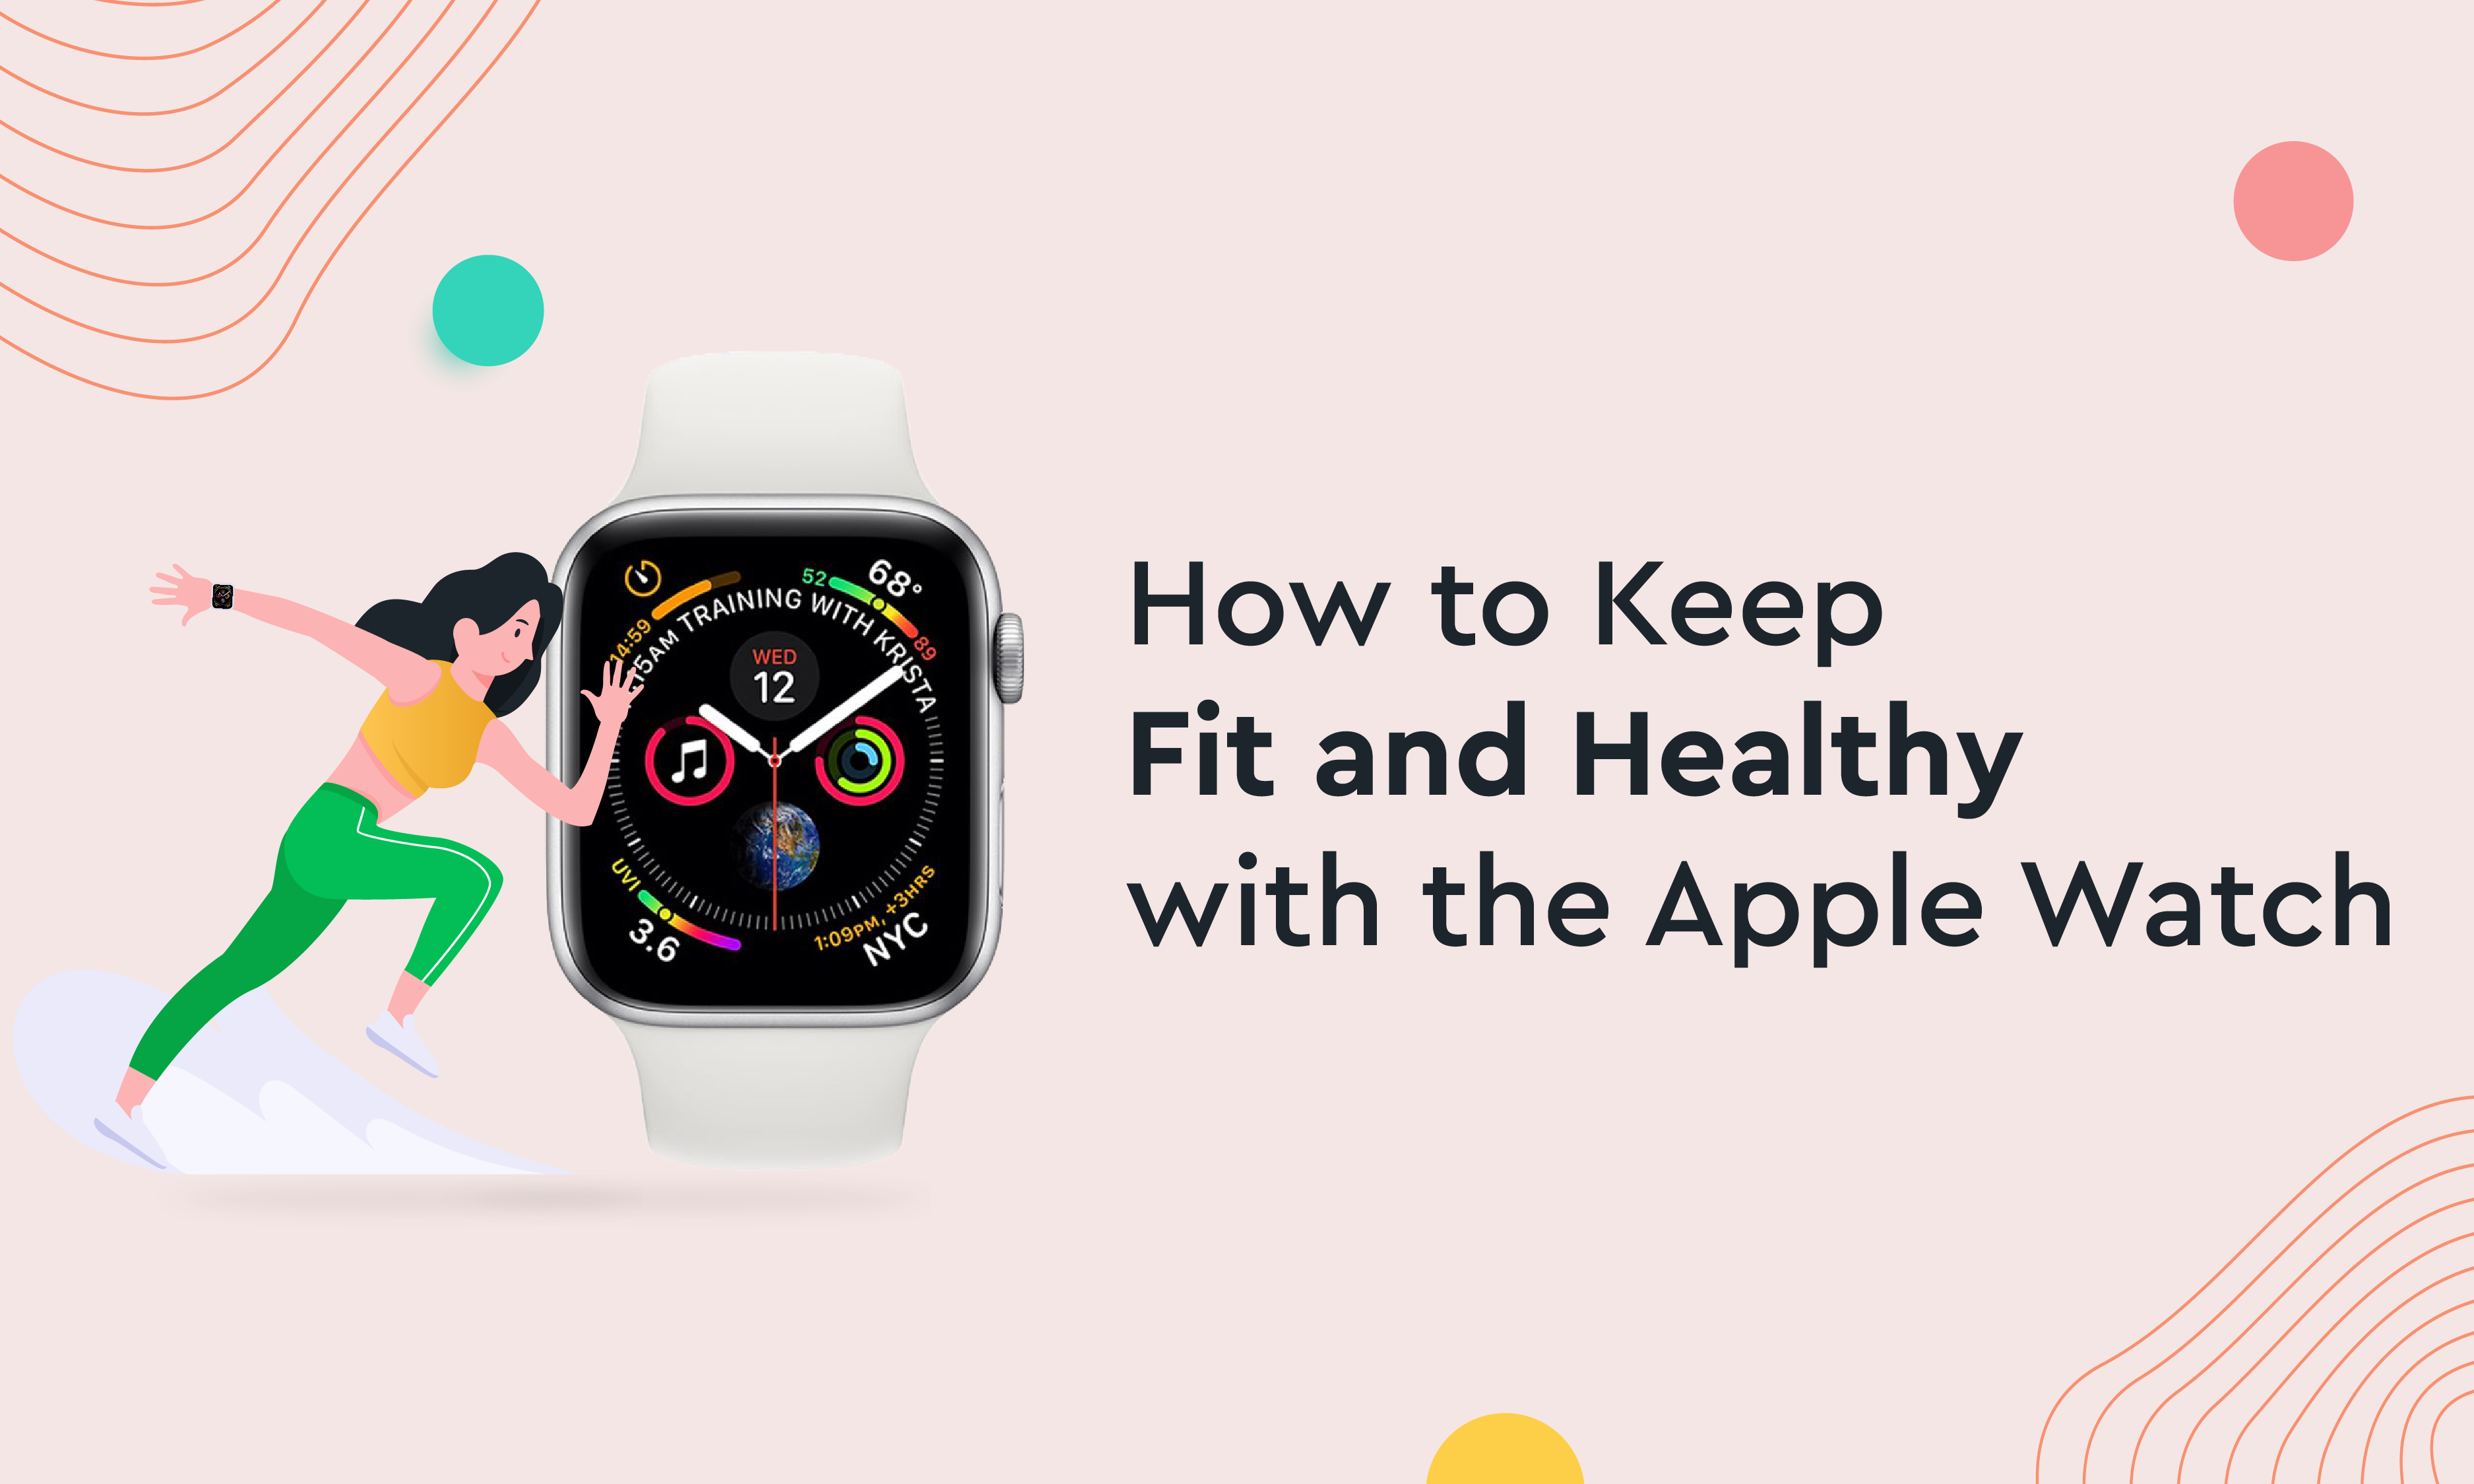 How to Keep Fit and Healthy with the Apple Watch